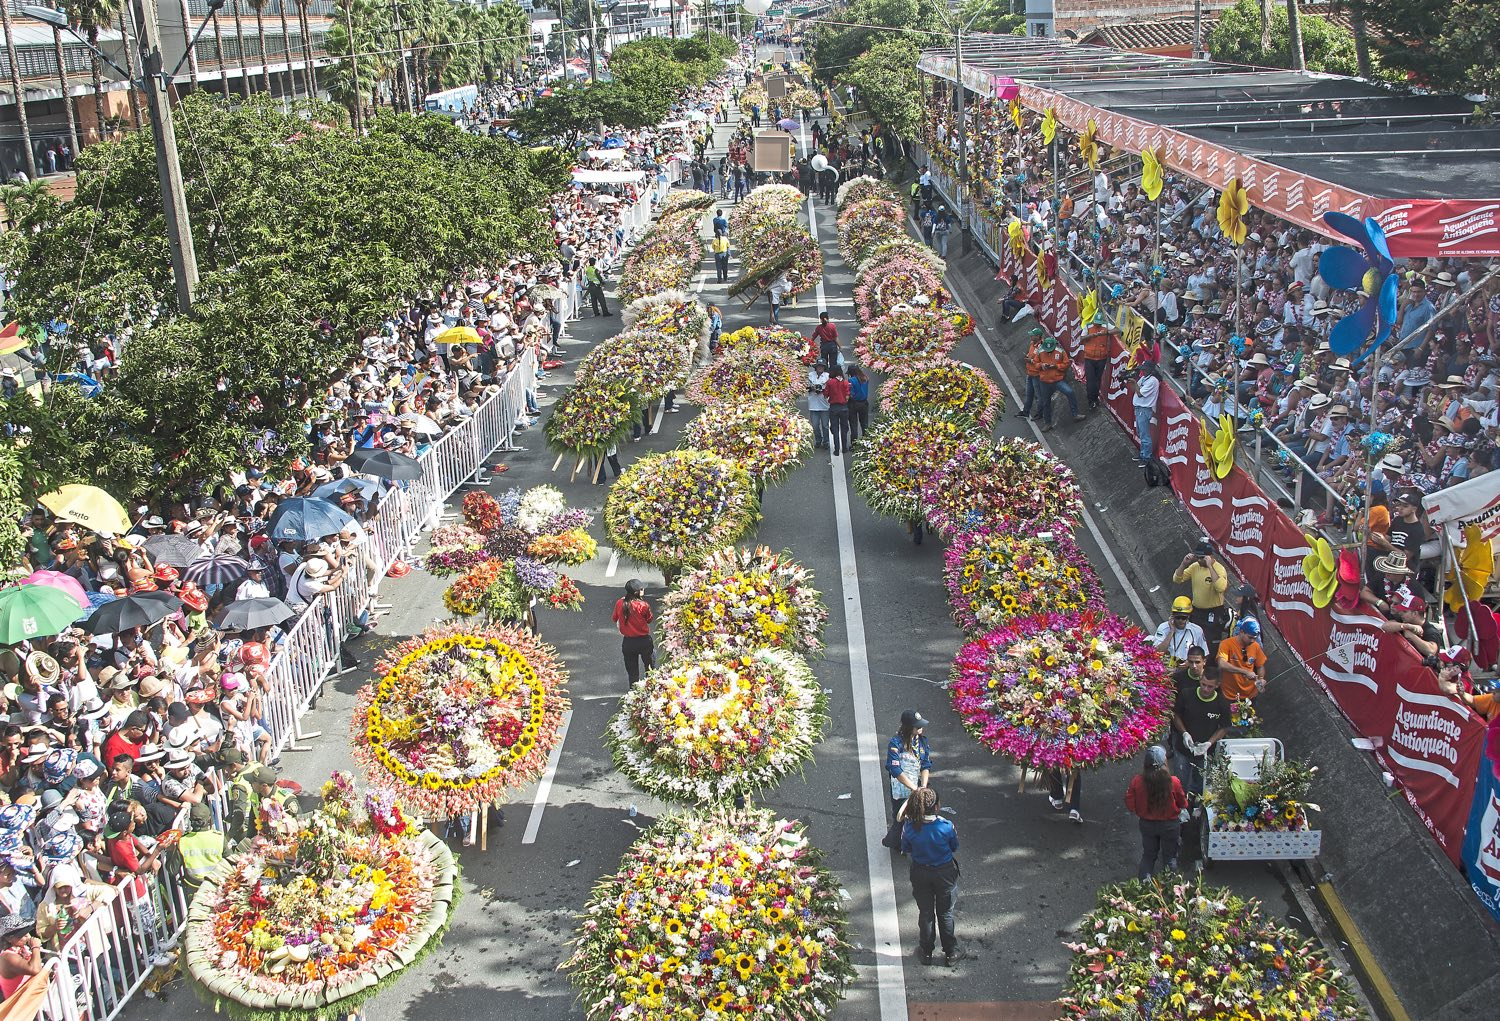 Thousands of people lined the streets Monday, Aug. 7, 2017, to watch the 60th anniversary of the flower festival in Medellin, Colombia. (Nate Guidry/Post-Gazette)